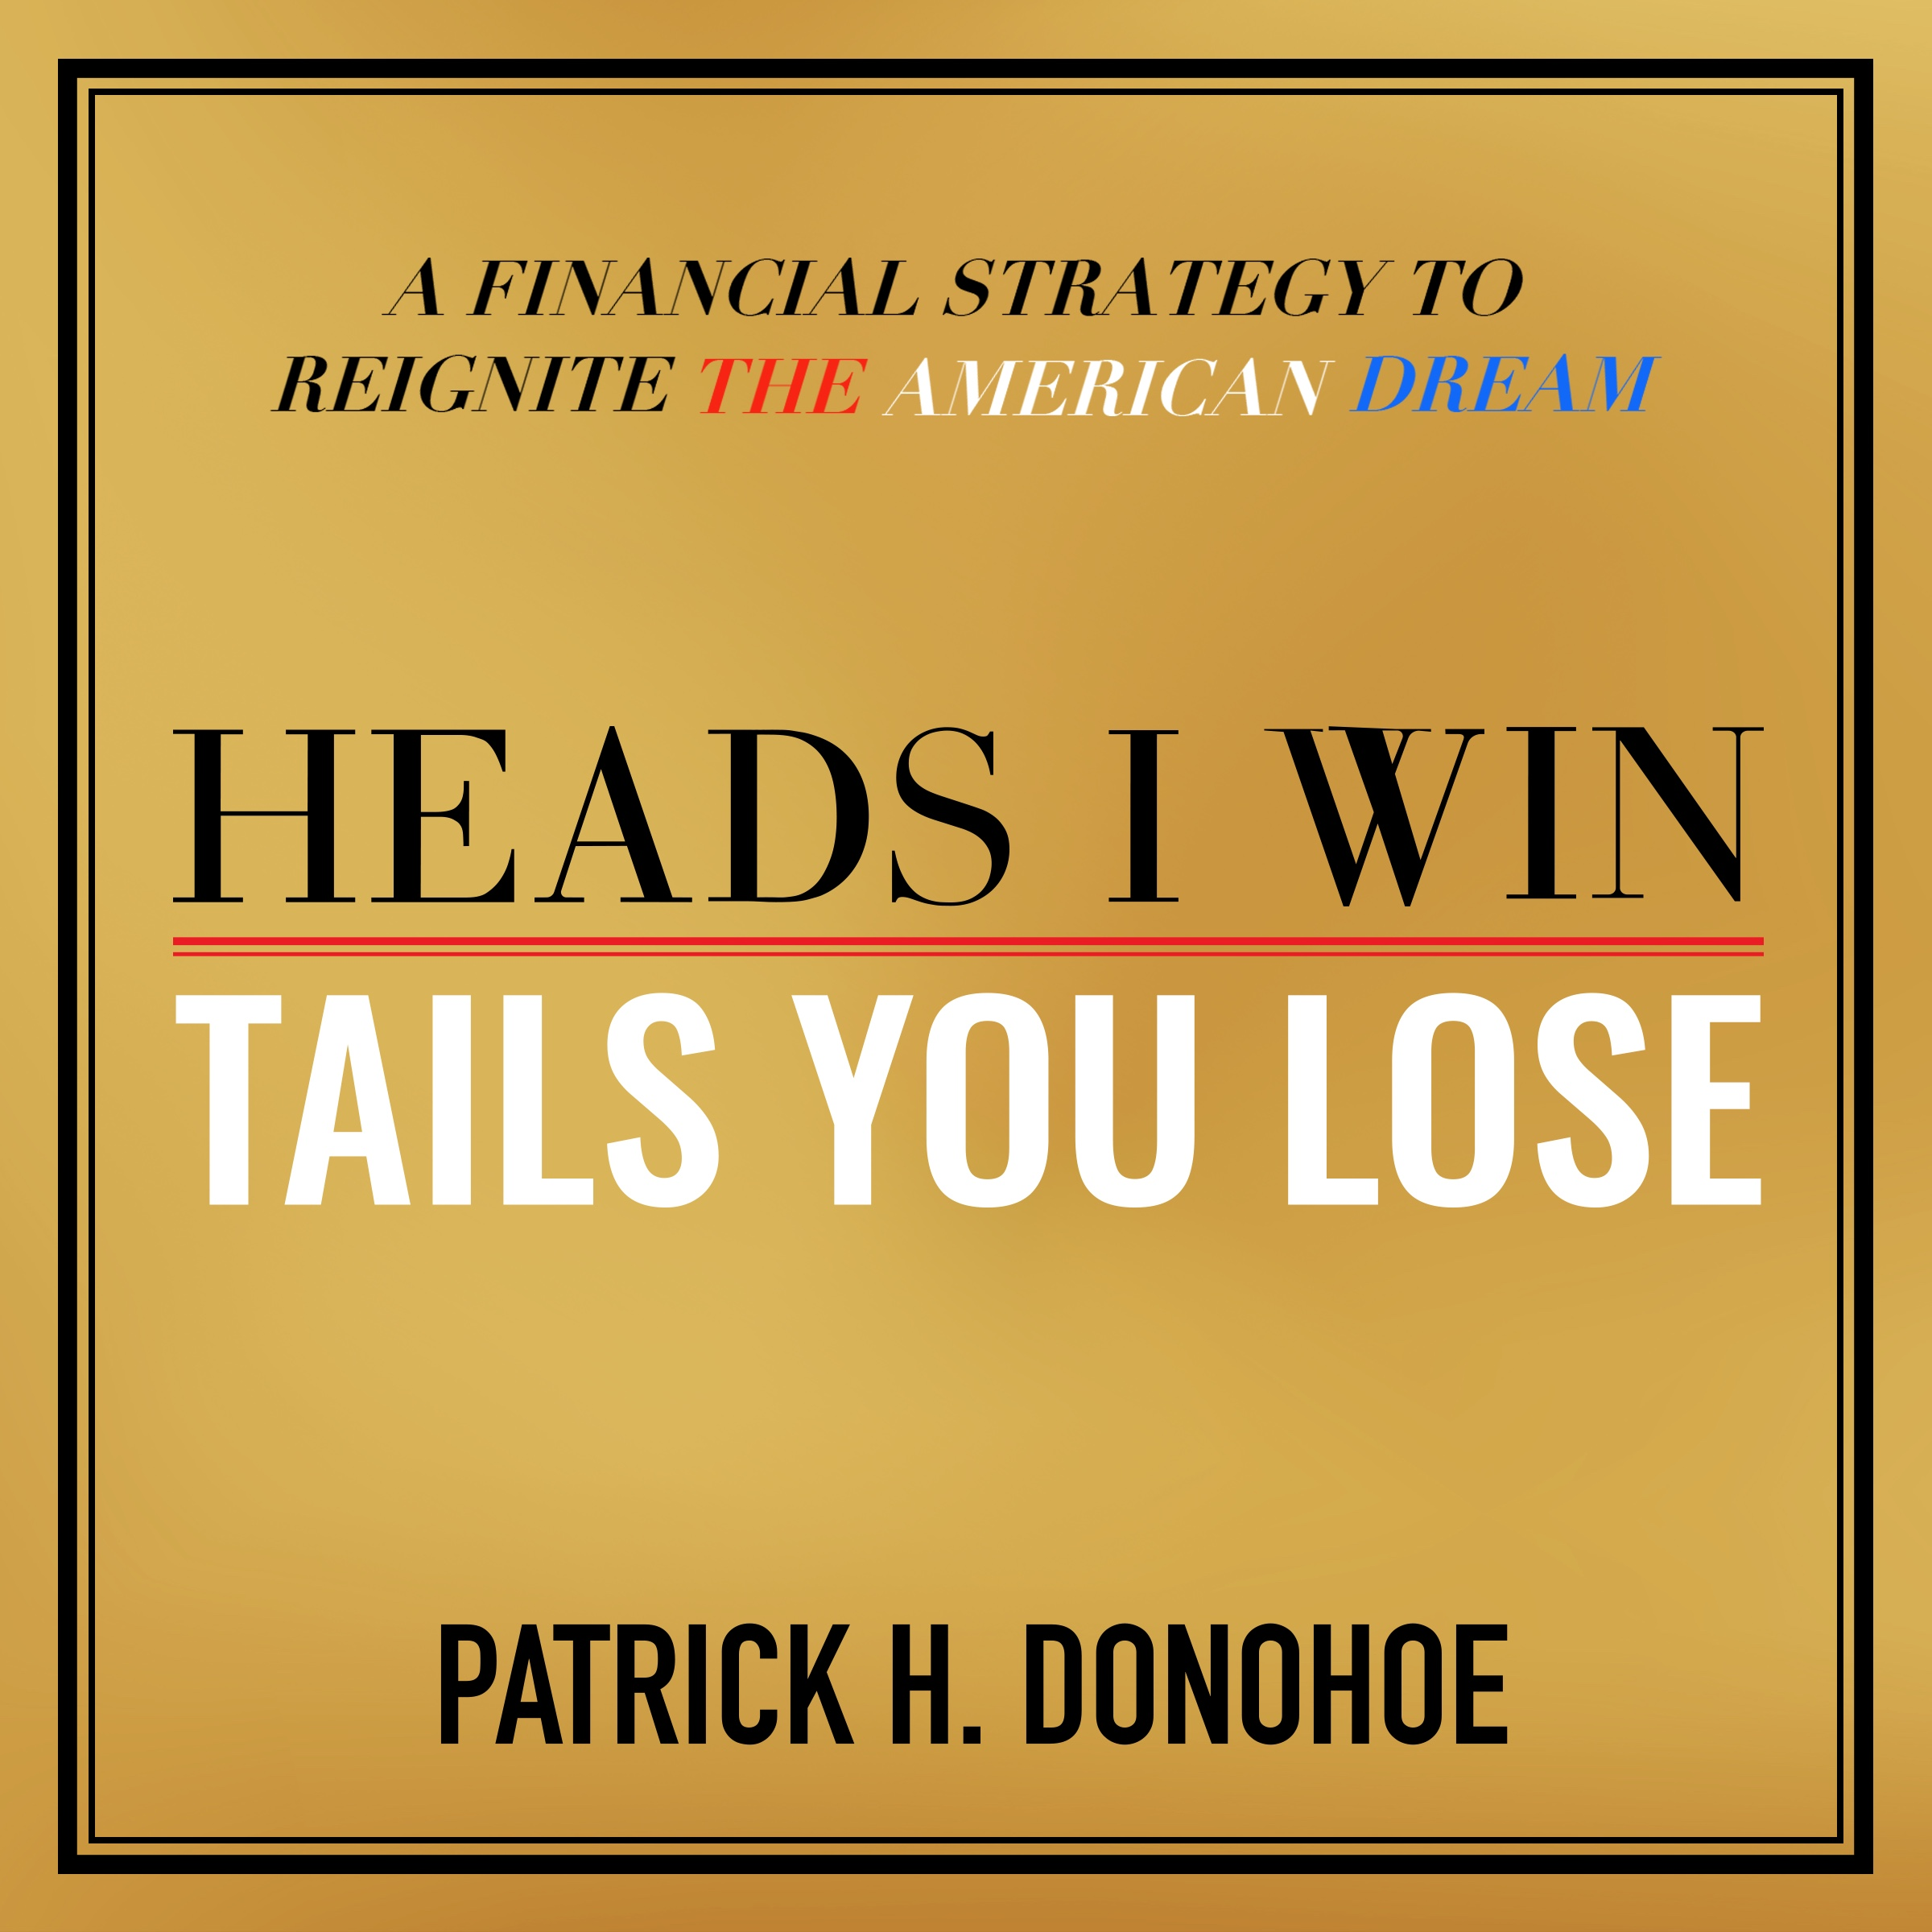 heads i win, tails you lose, patrick donohoe, financial book